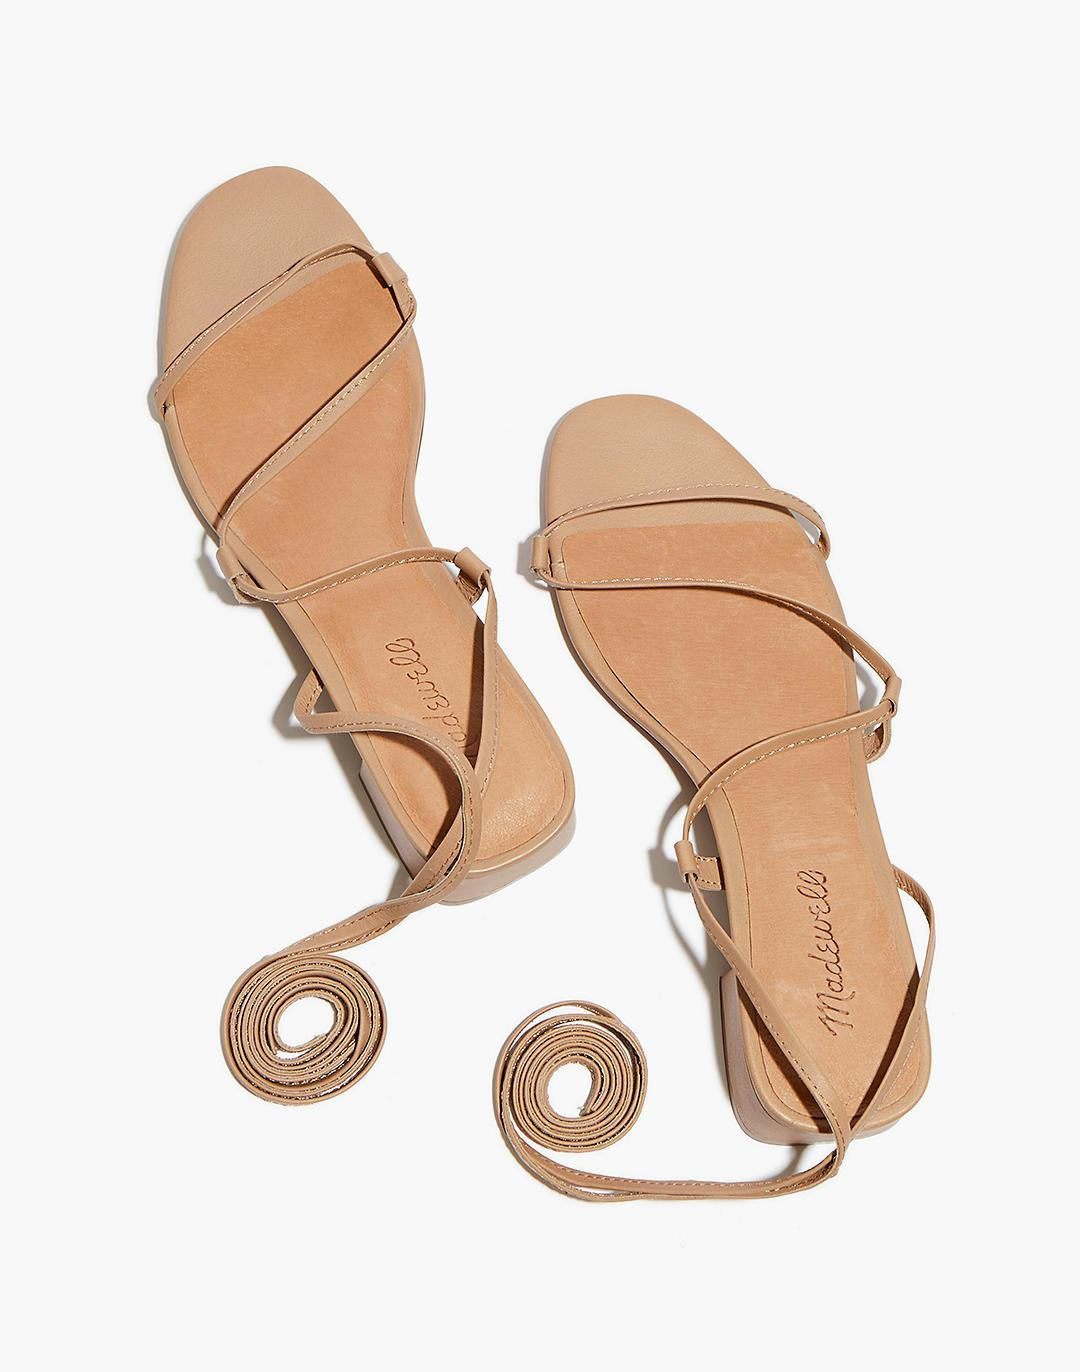 The Brigitte Lace-Up Sandal in Leather